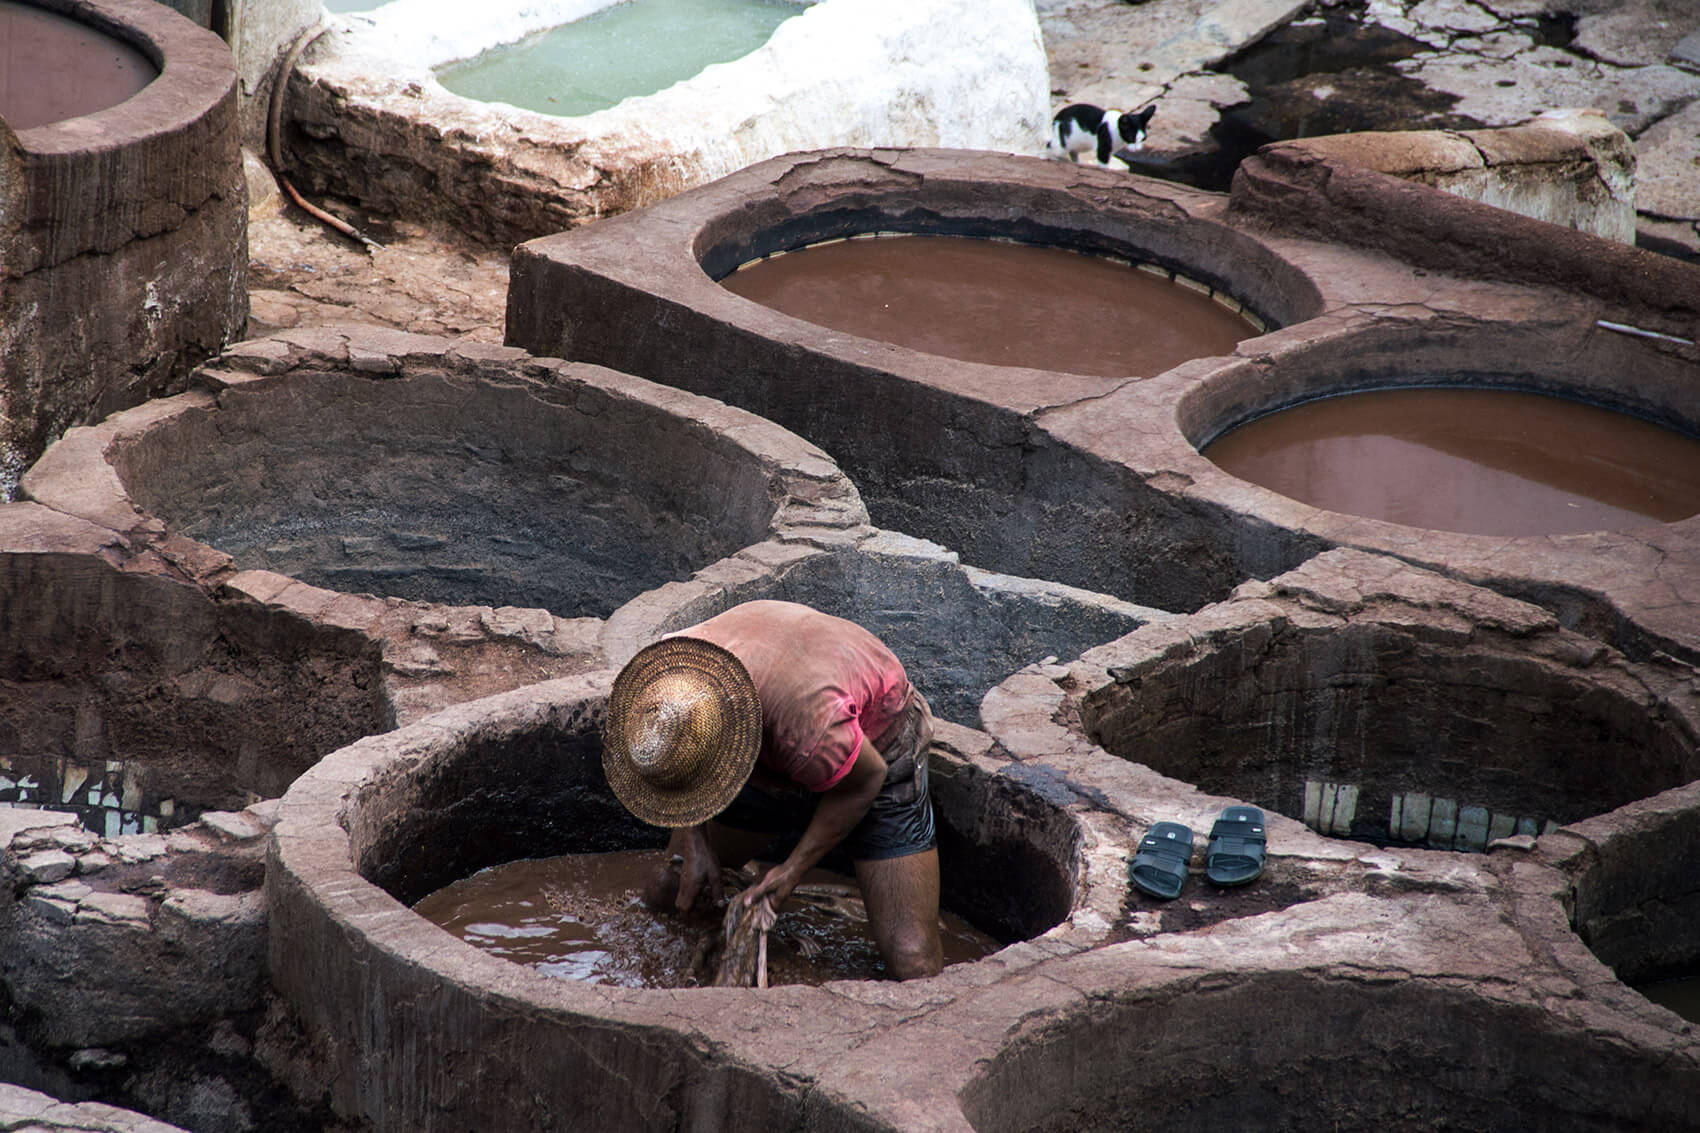 Skin tannery in Fes